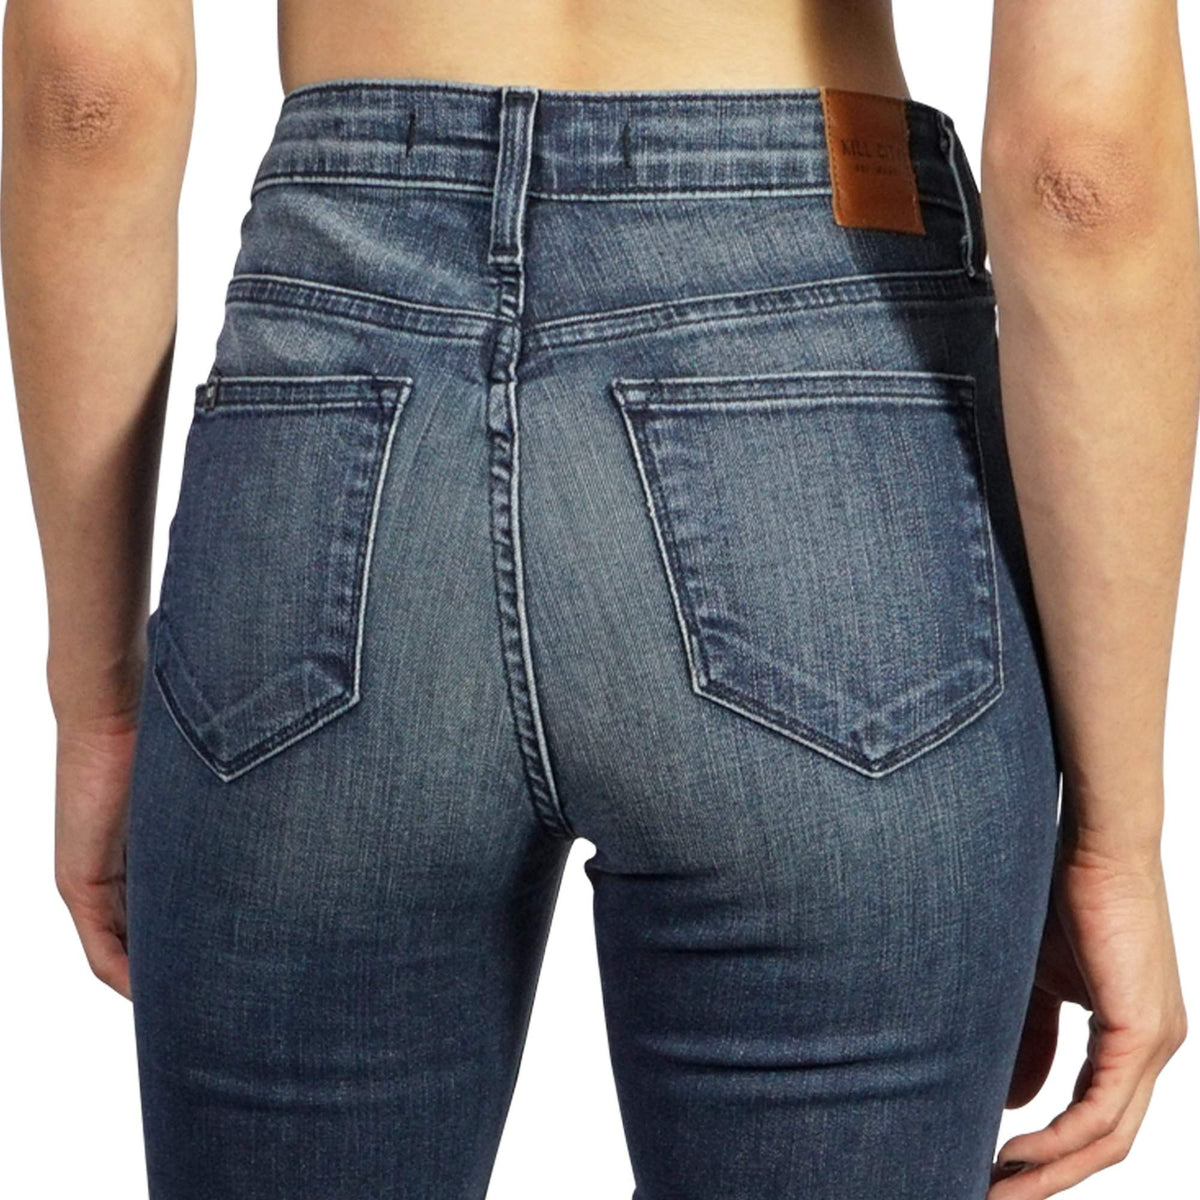 KILL CITY LADIES HI WIRE FIT JEANS MADE IN USA CLR LVB 64-673 - Salemonster